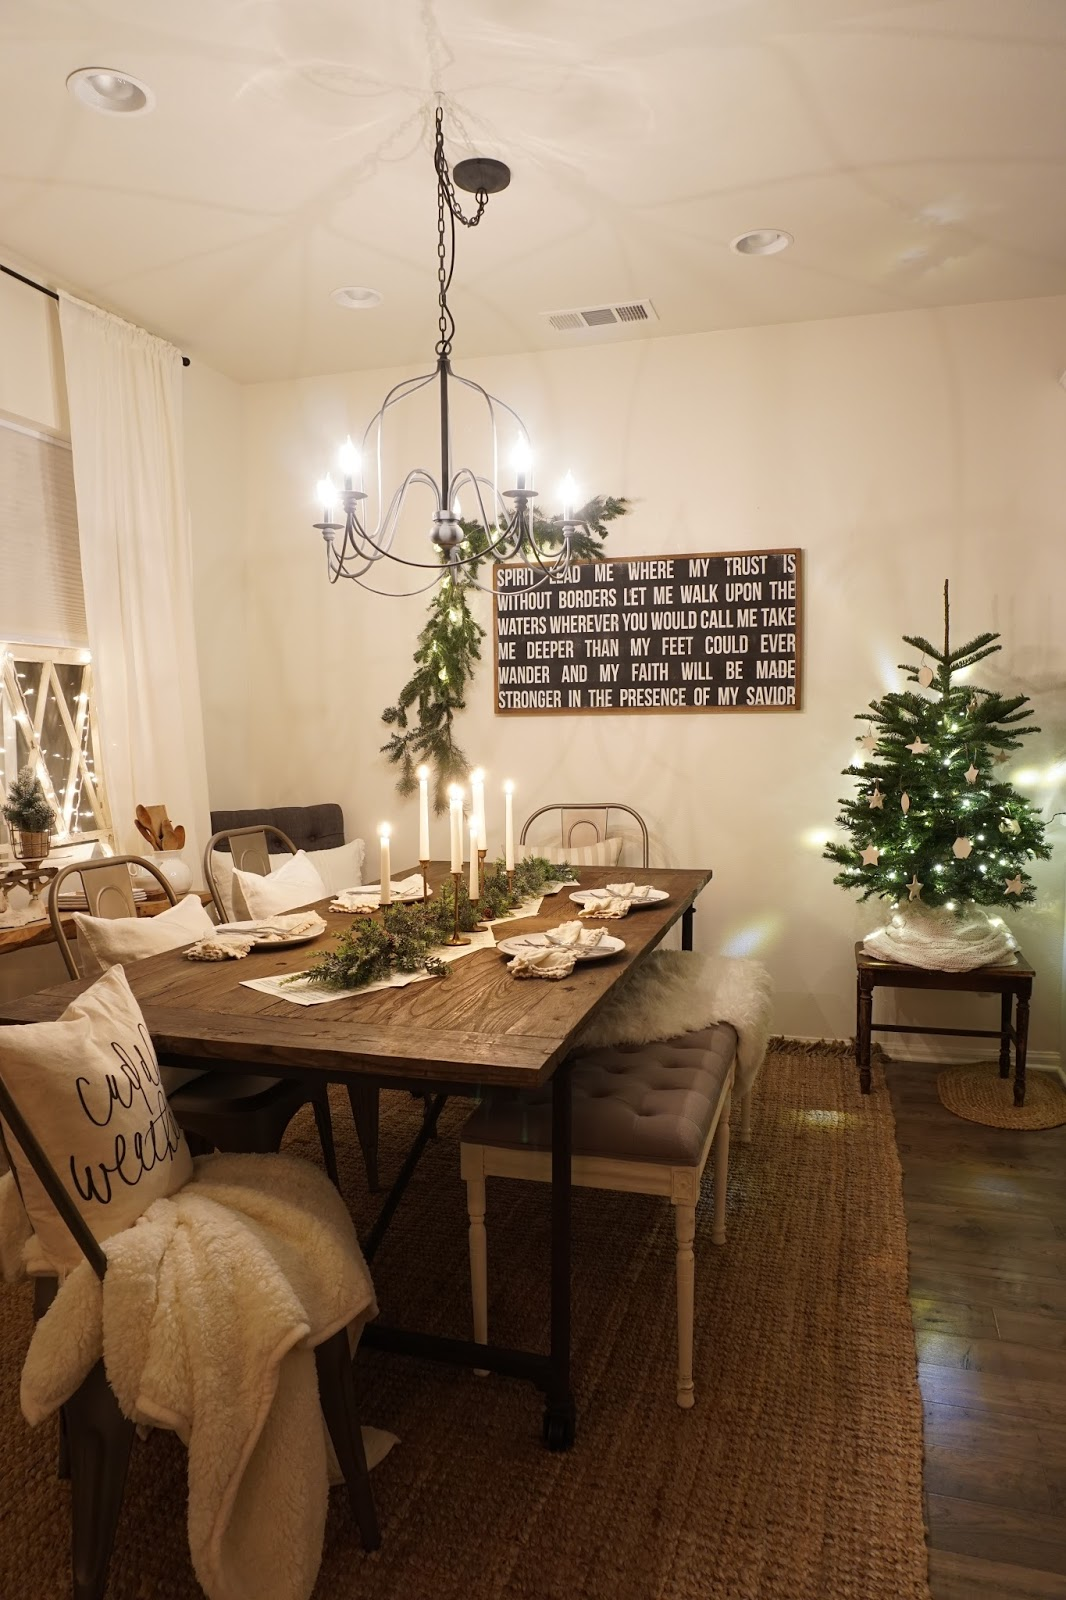 night time christmas dining room tour mrs rollman blog for christmas i just turned on the chandelier and added in christmas lights and candles for a magical feel